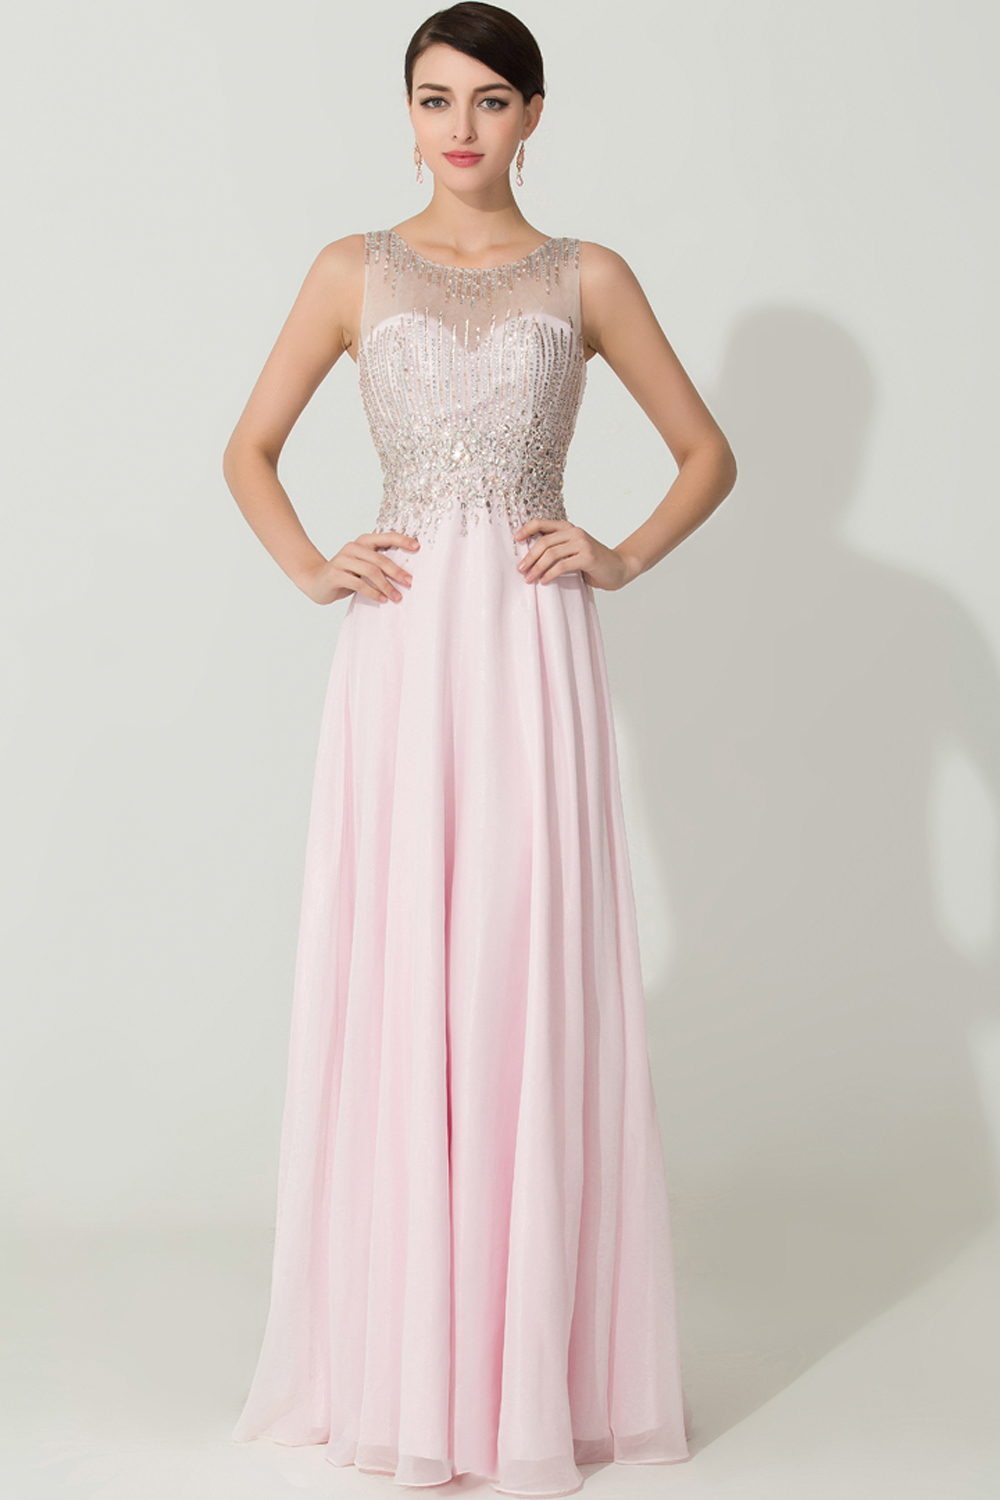 A-Line/Princess Scoop Neckline Floor Length Chiffon Prom Dress with Beadings